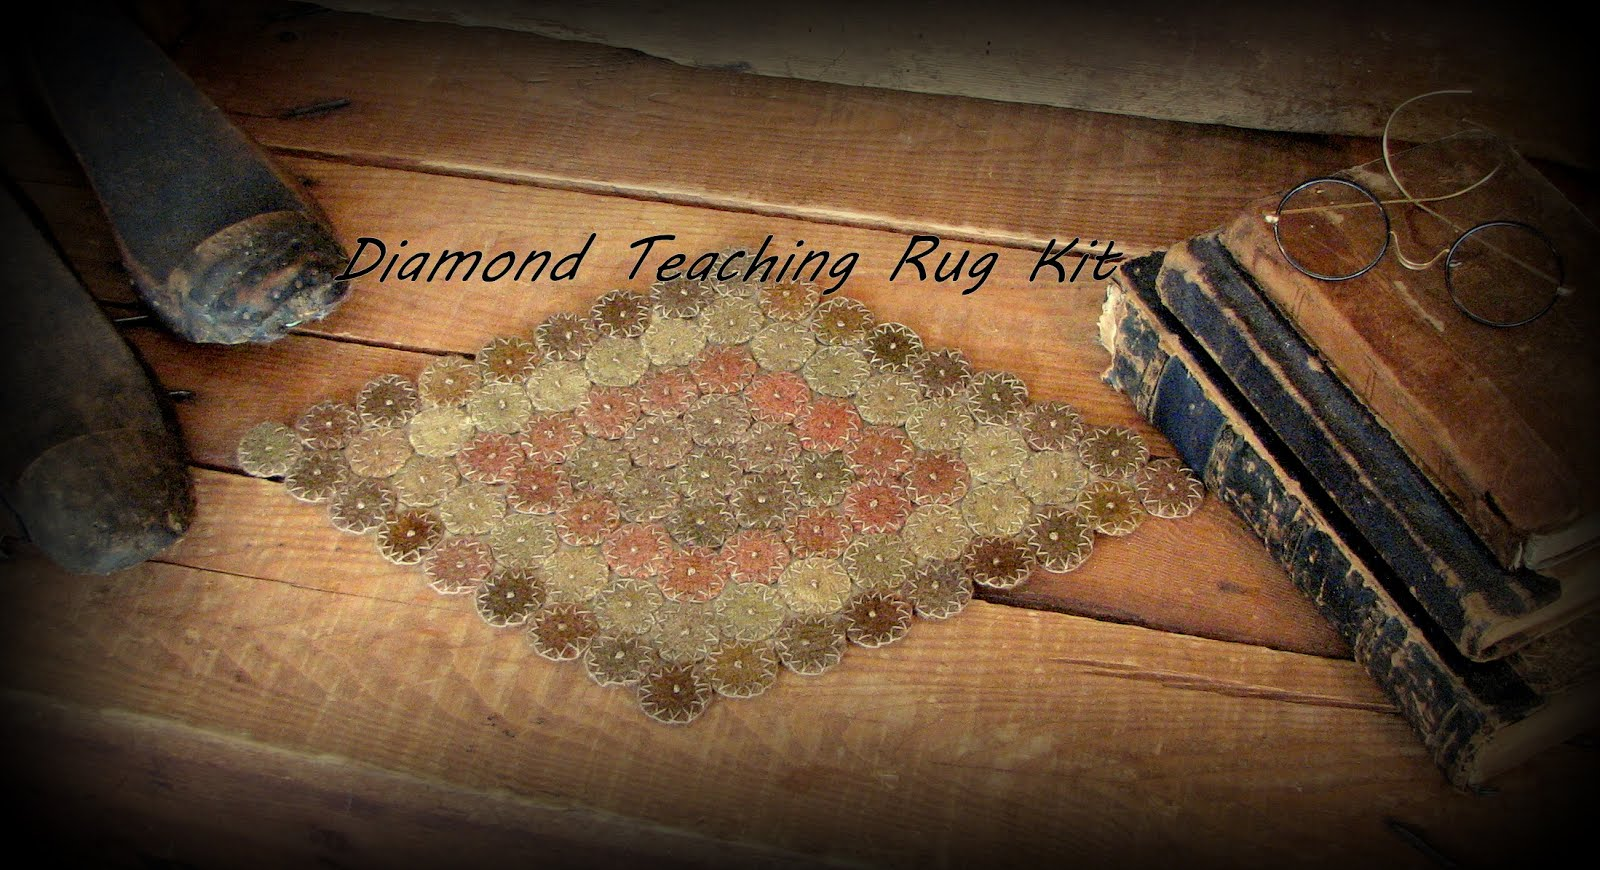 The Diamond Vintage Wool Teaching Rug Kit